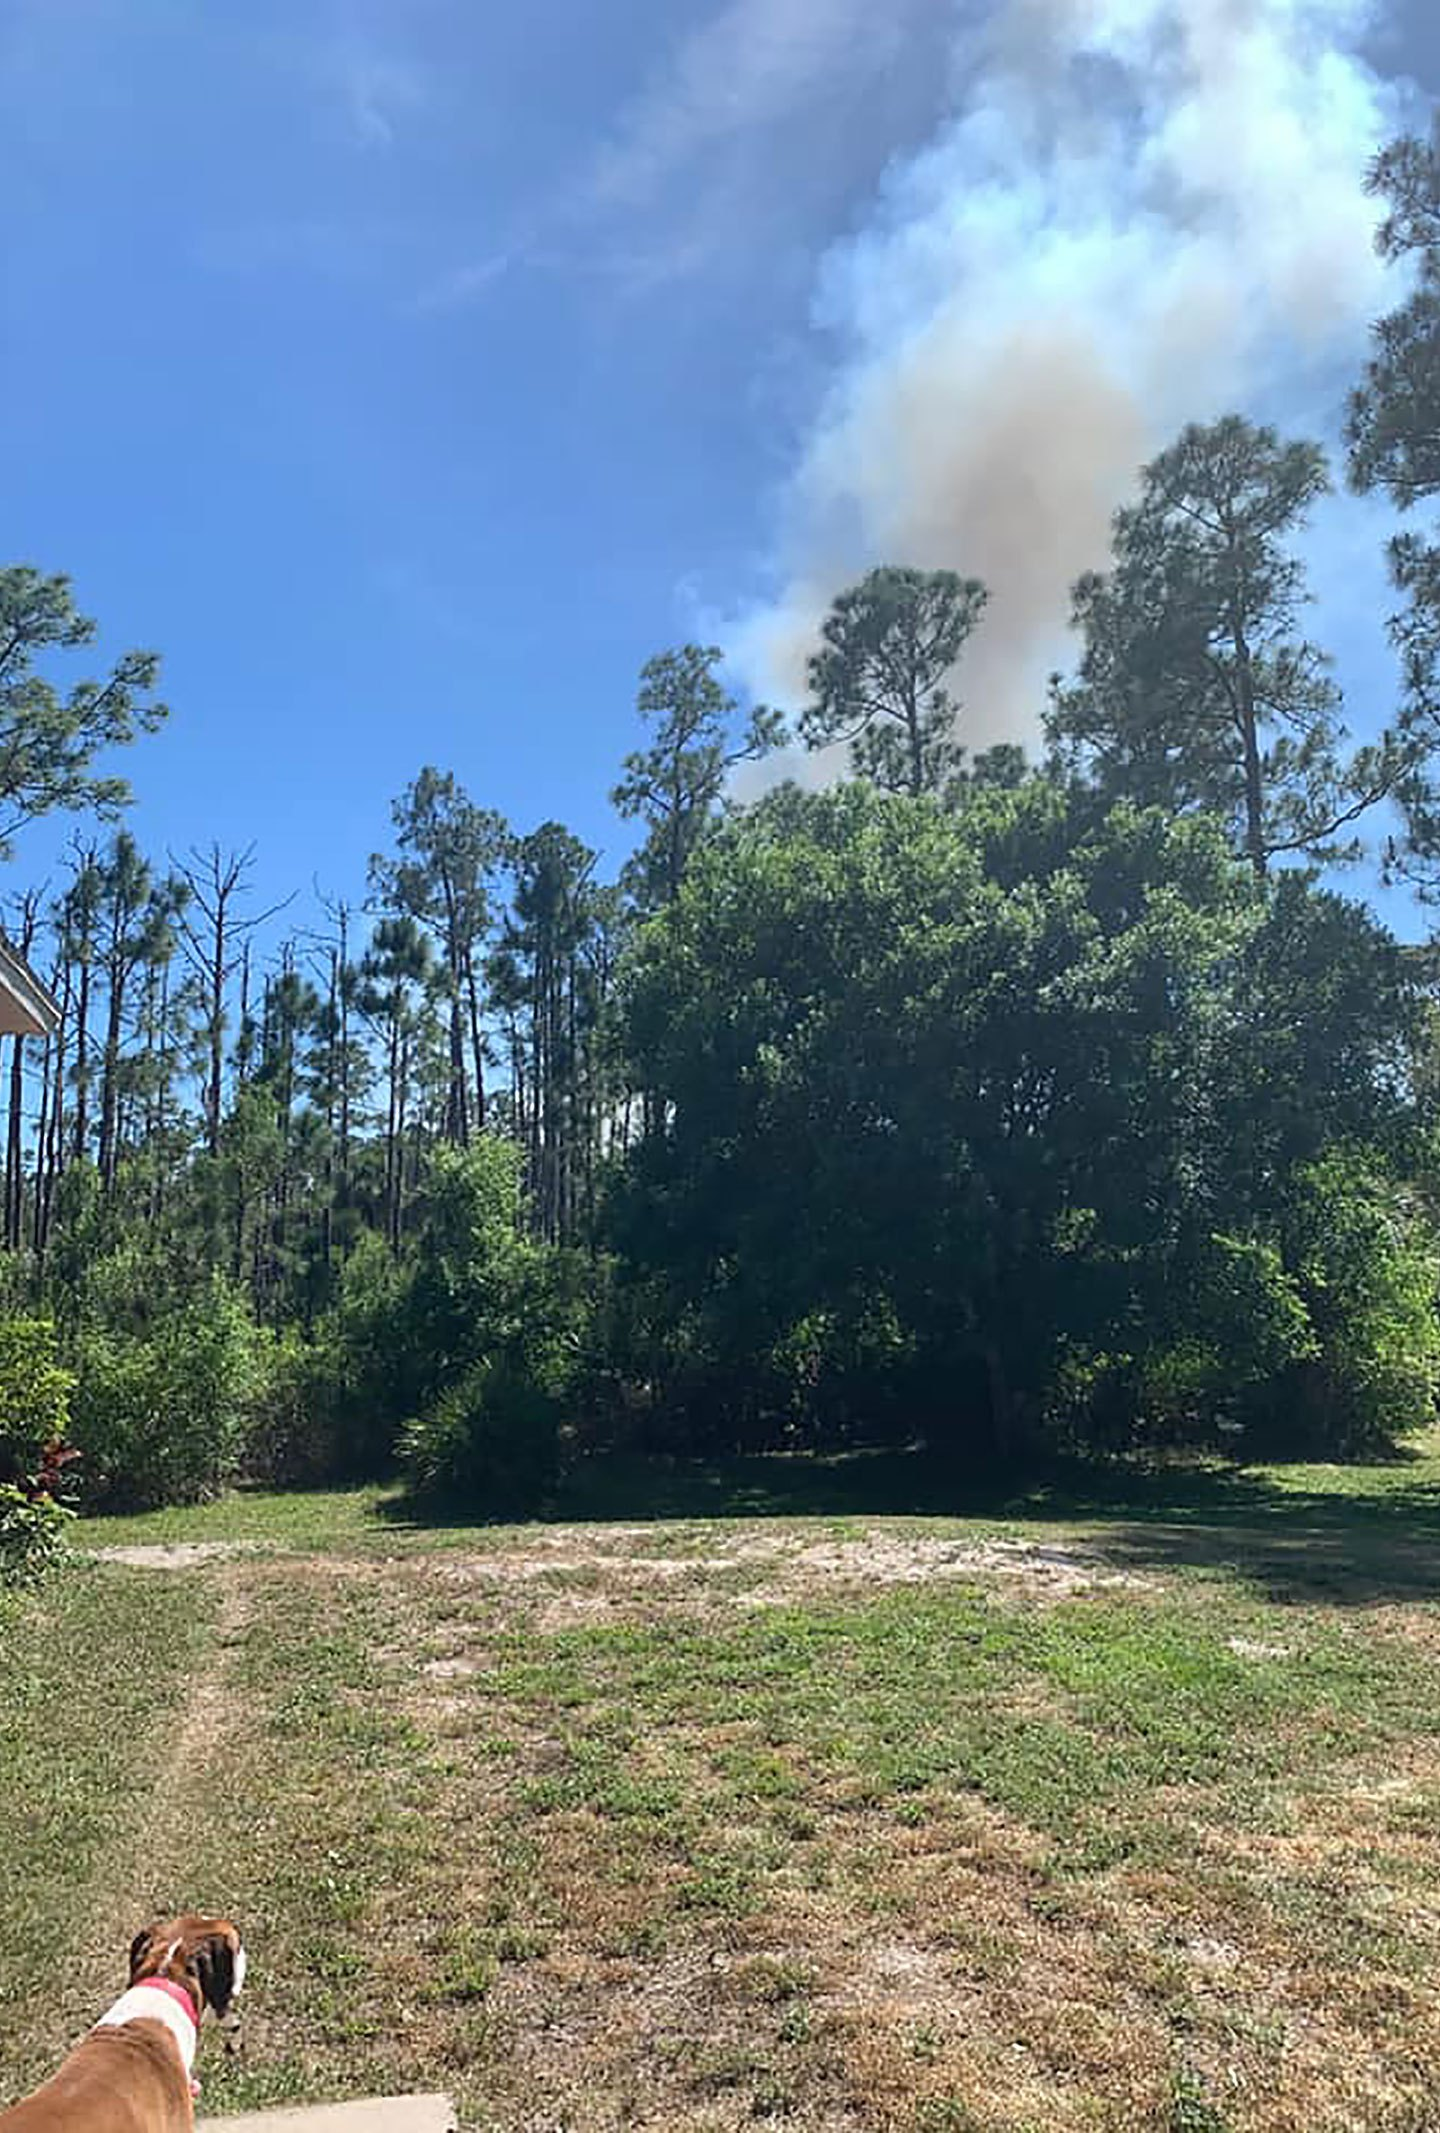 Gender reveal party ignites fire in Florida, fire officials say